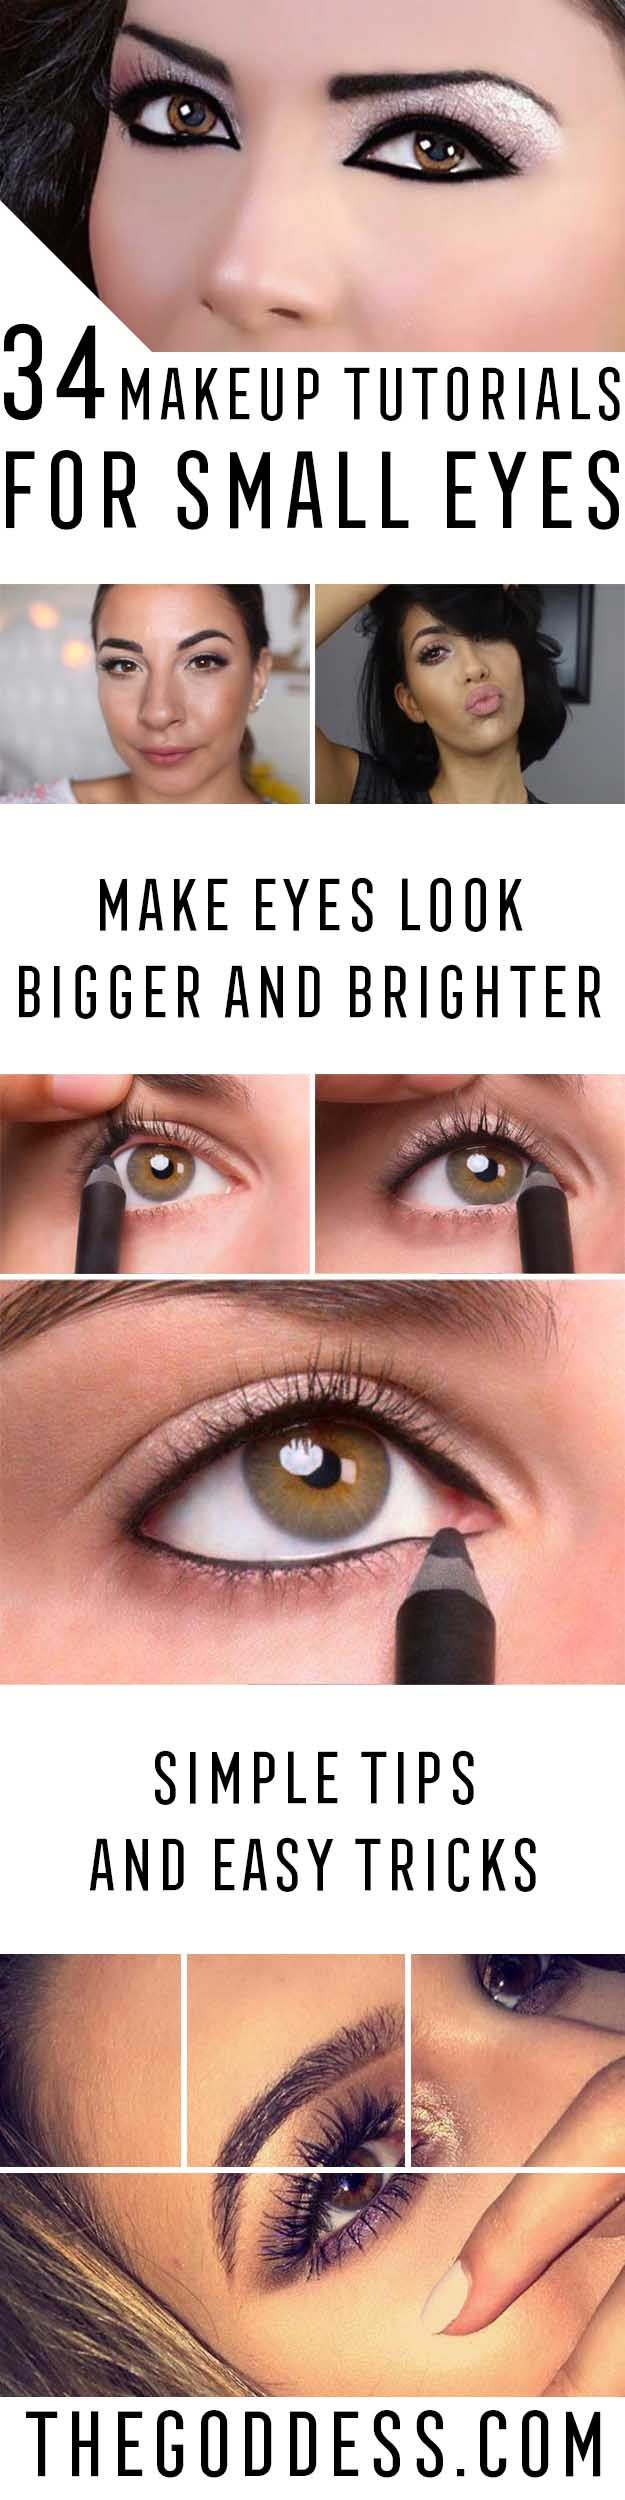 34 Makeup Tutorials For Small Eyes The Goddess - 625×2500